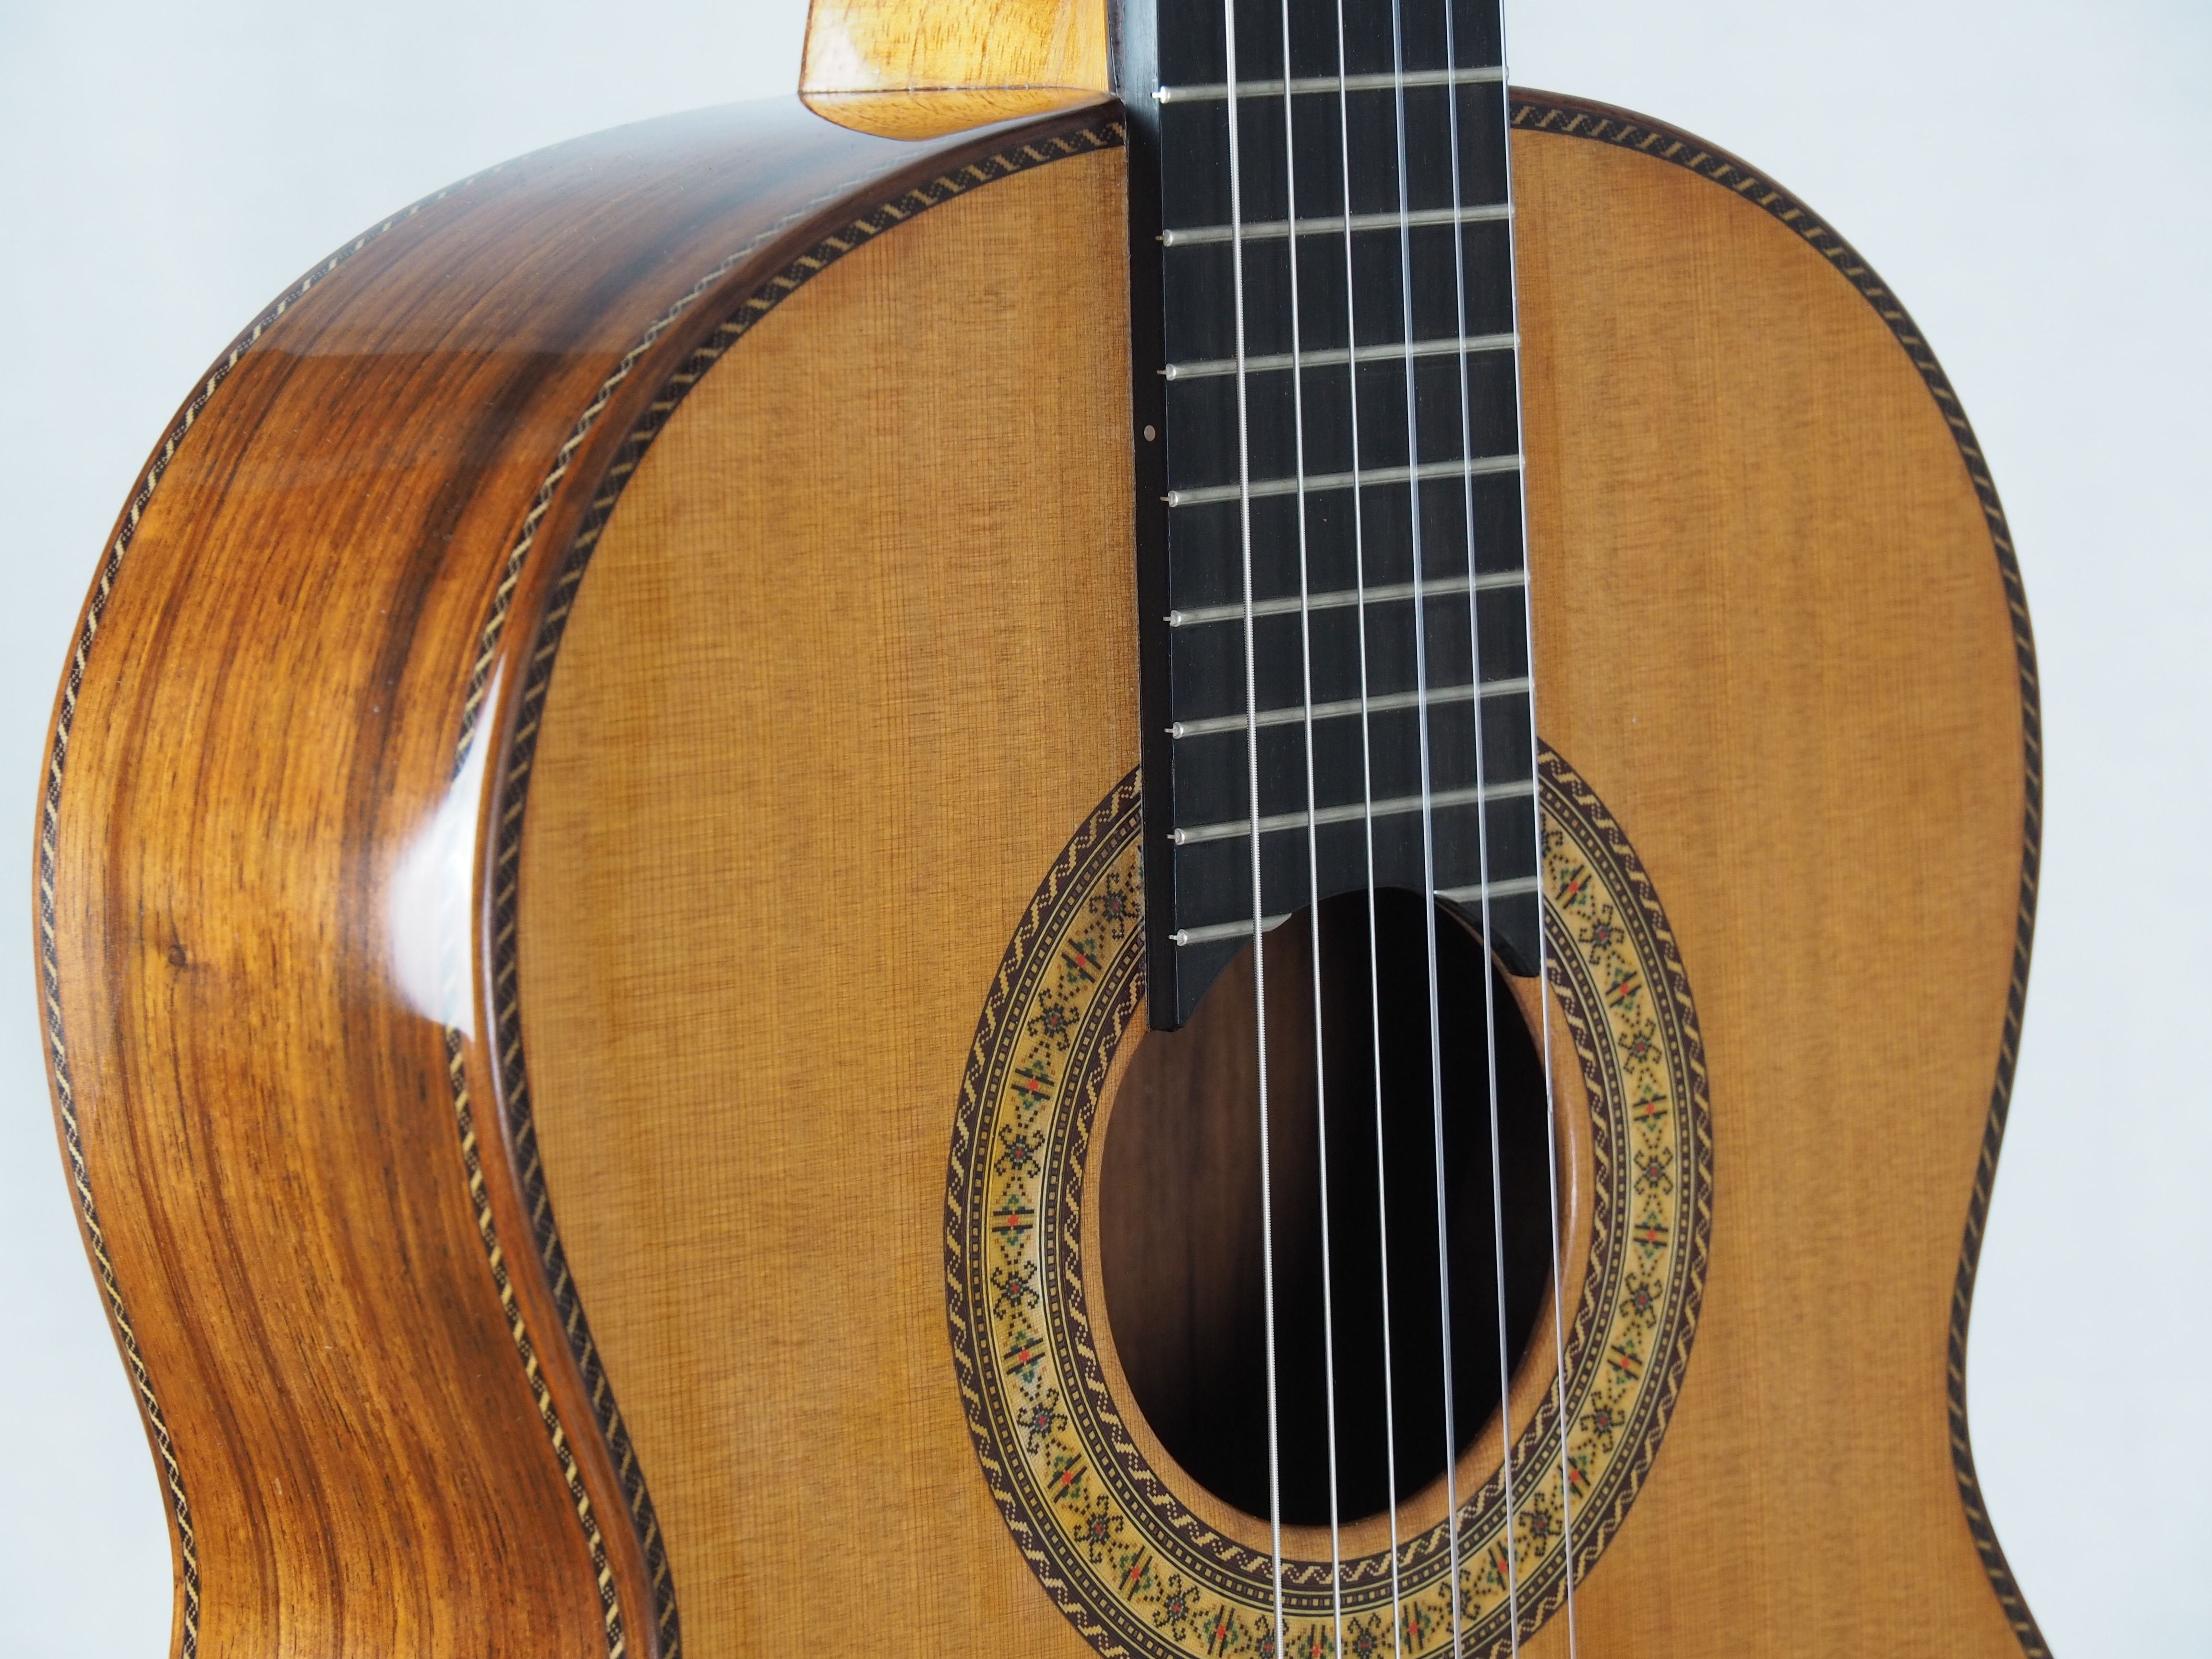 Guitare classique lattice du luthier Dieter Hopf Portentosa Evolucion Guitare classique lattice du luthier Dieter